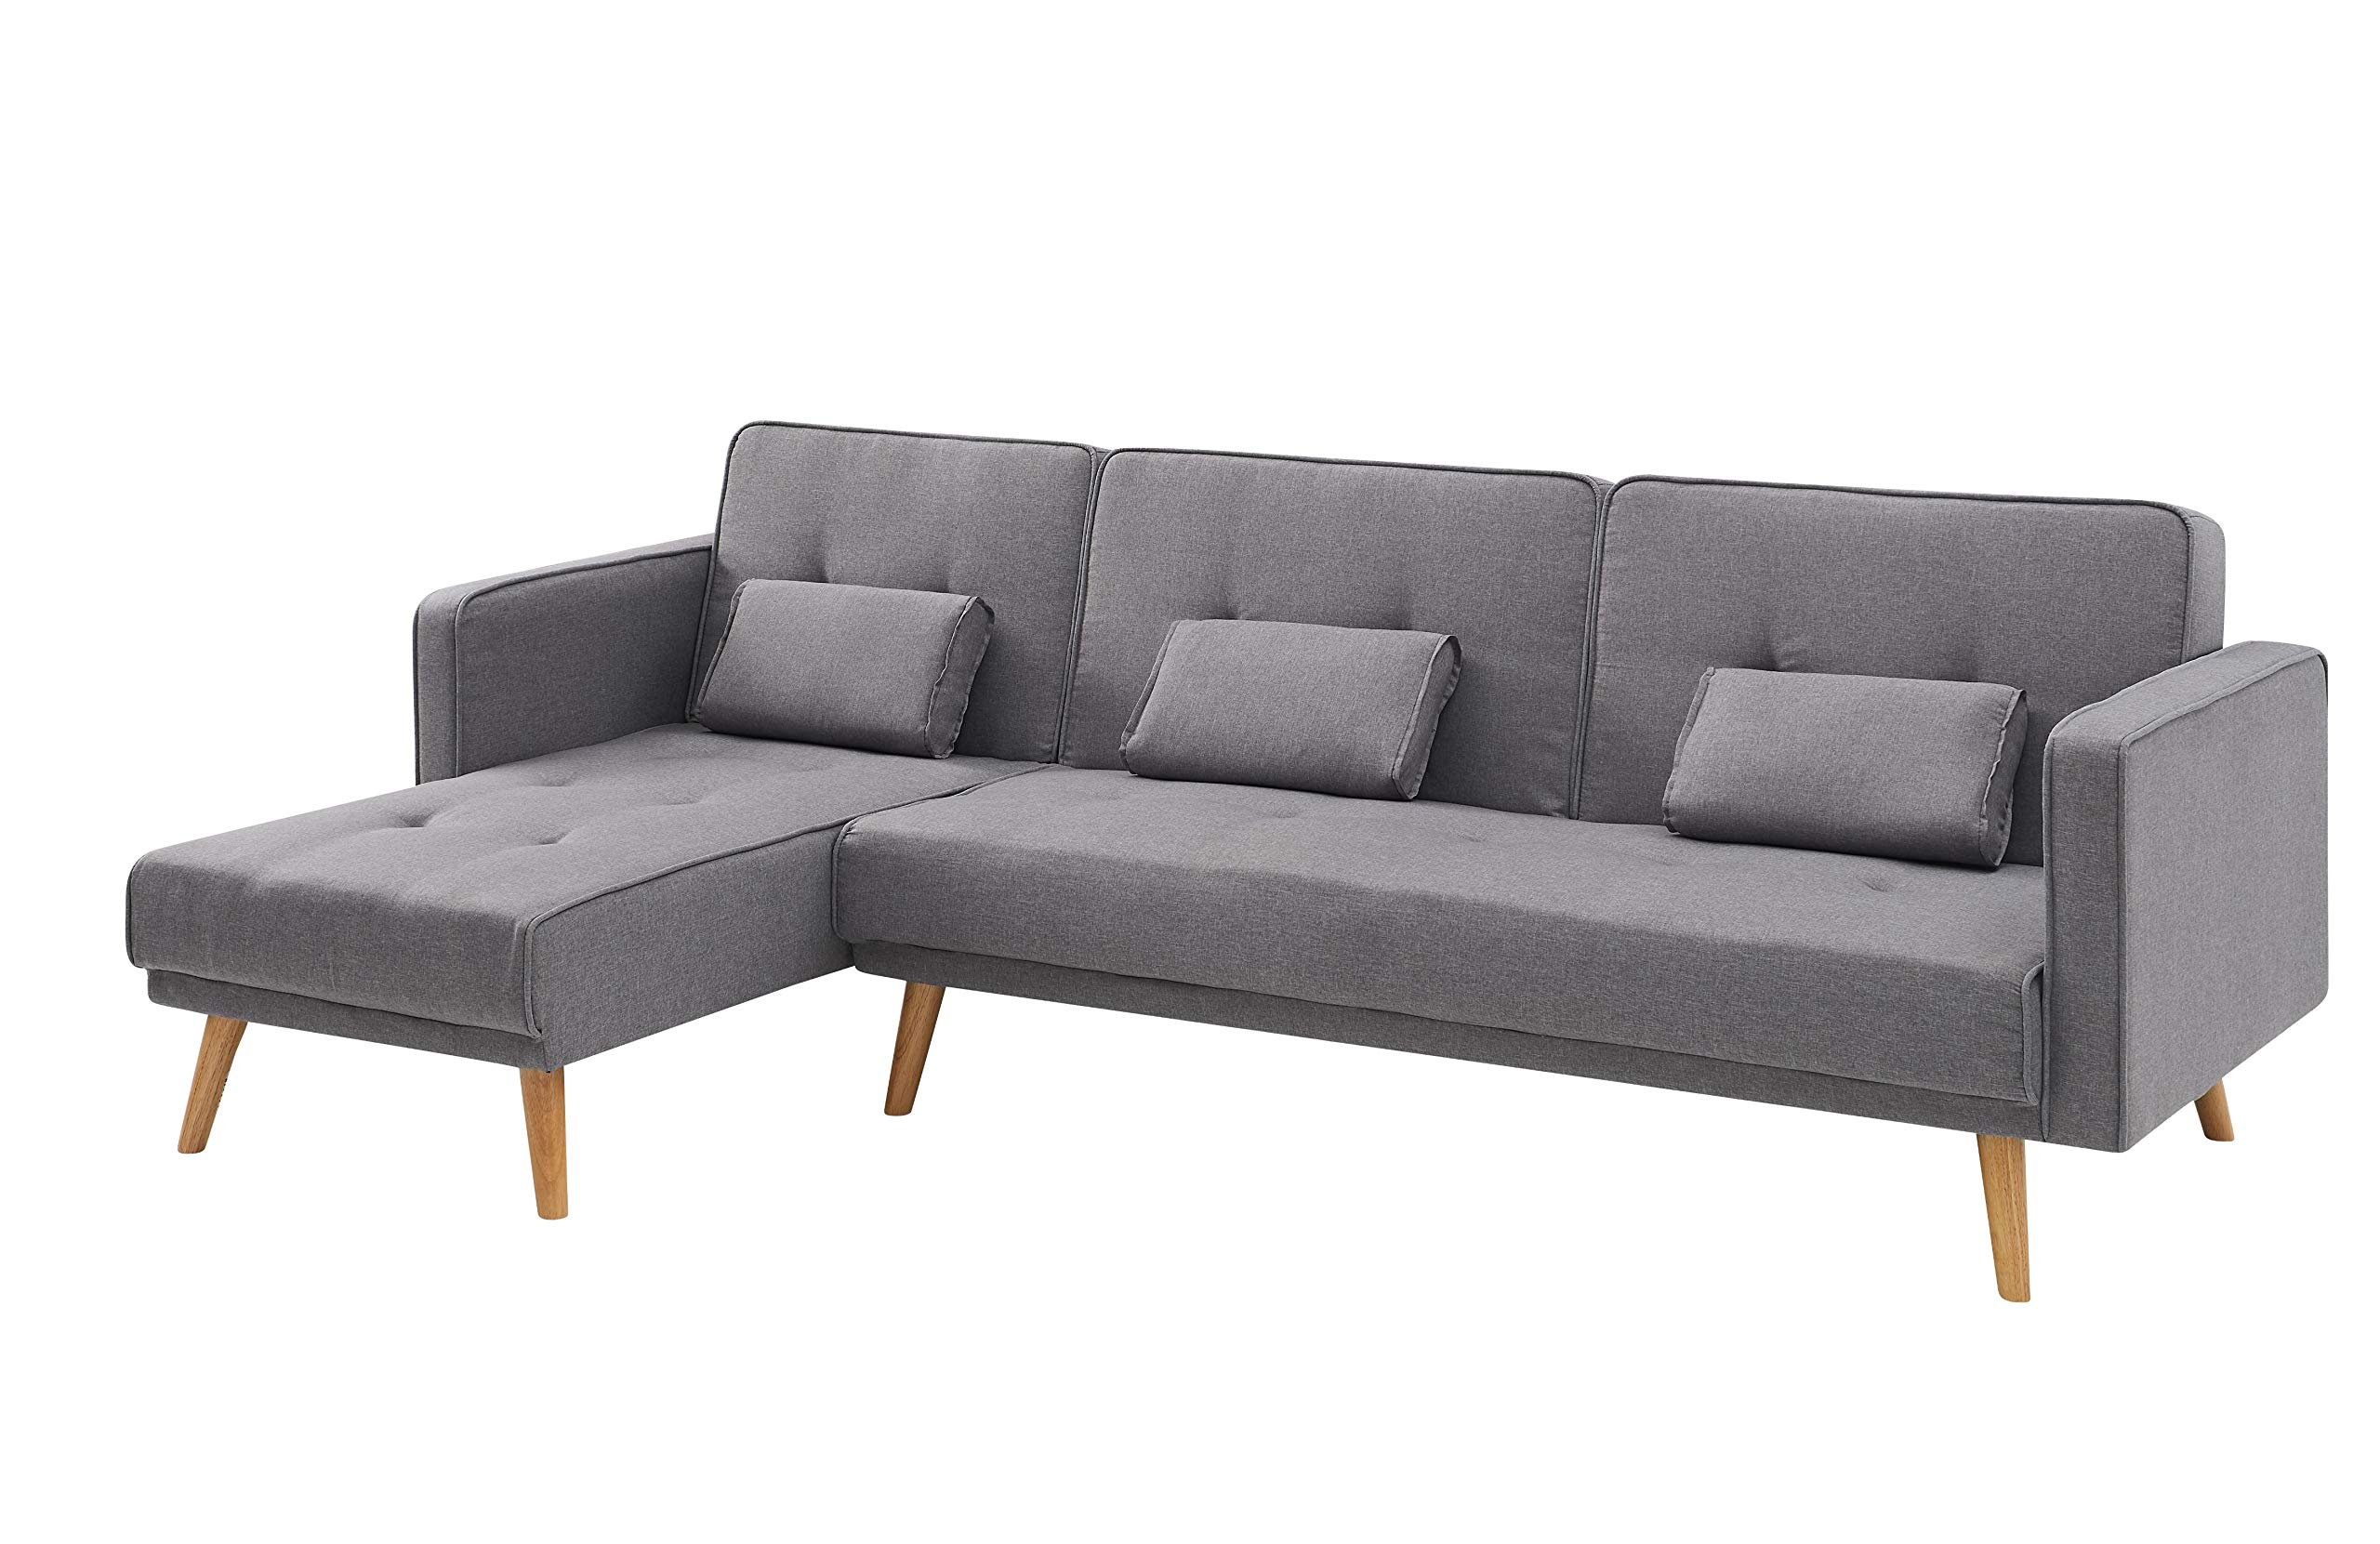 L Shaped 3 Seater Sofa Bed & Chaise with Armrests & Cushions